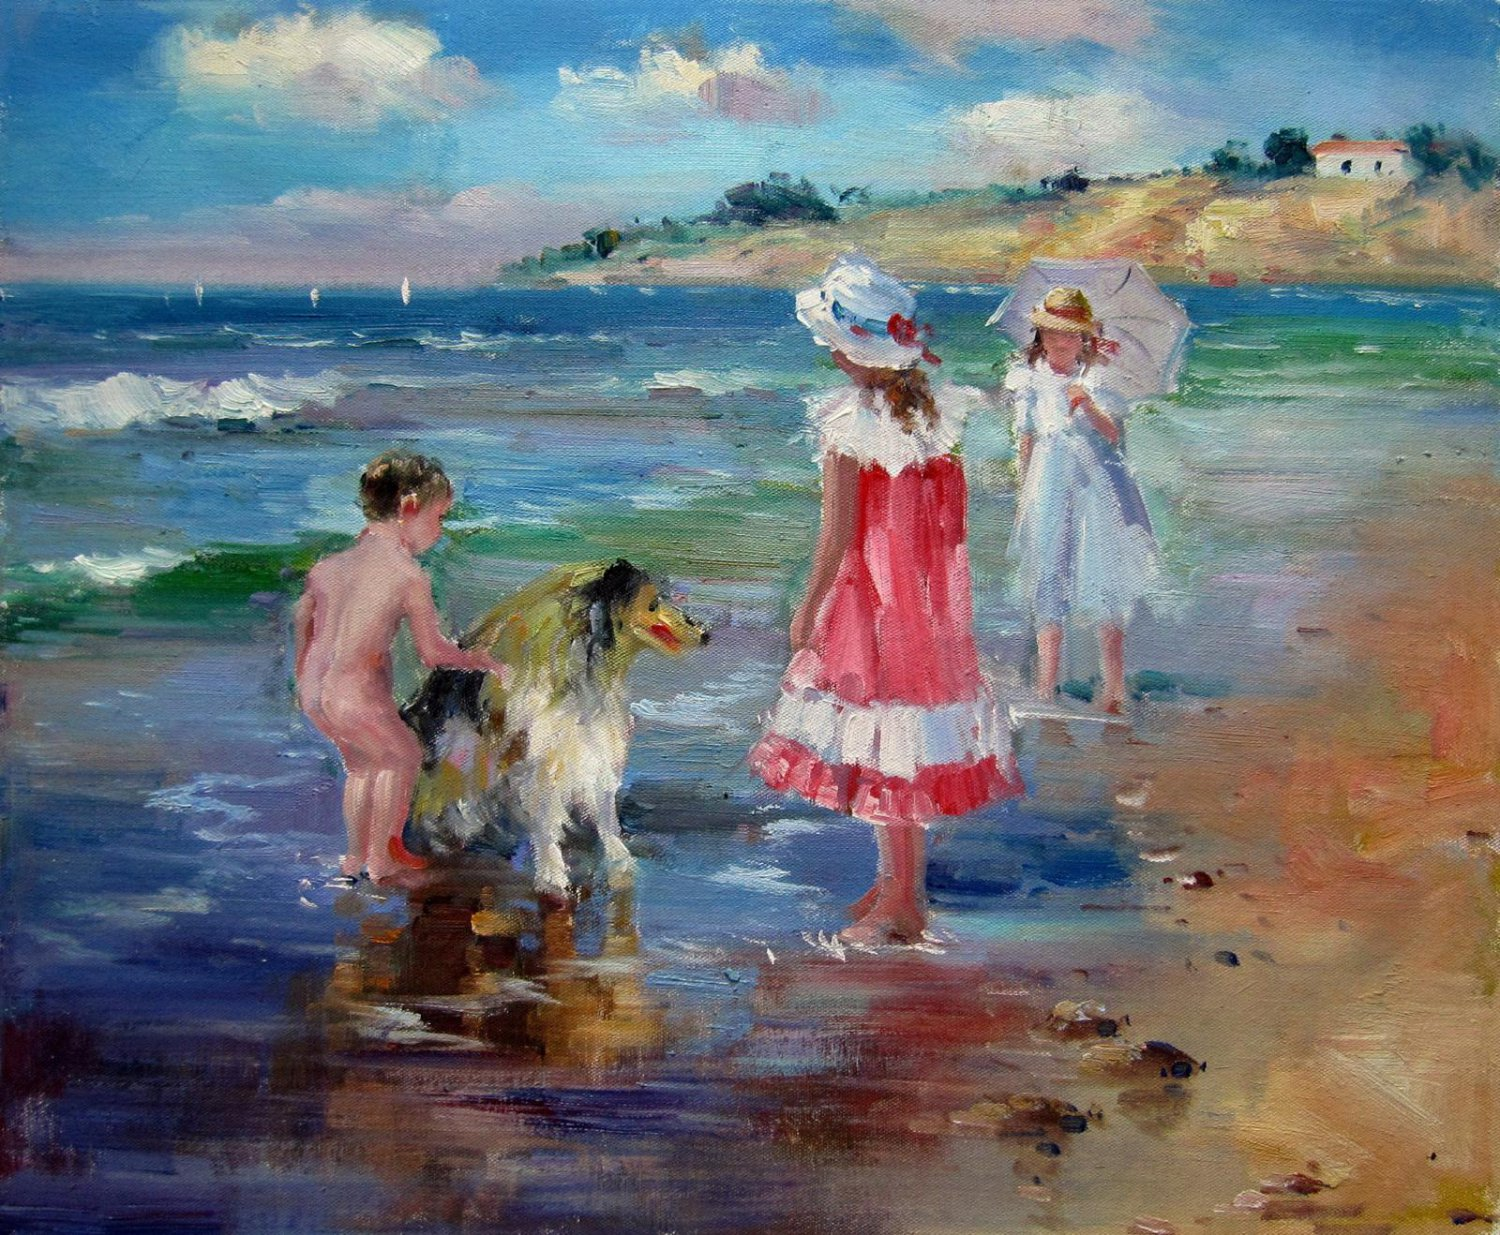 play at the beach 20x24 in. stretched Oil Painting Canvas Art Wall Decor modern245